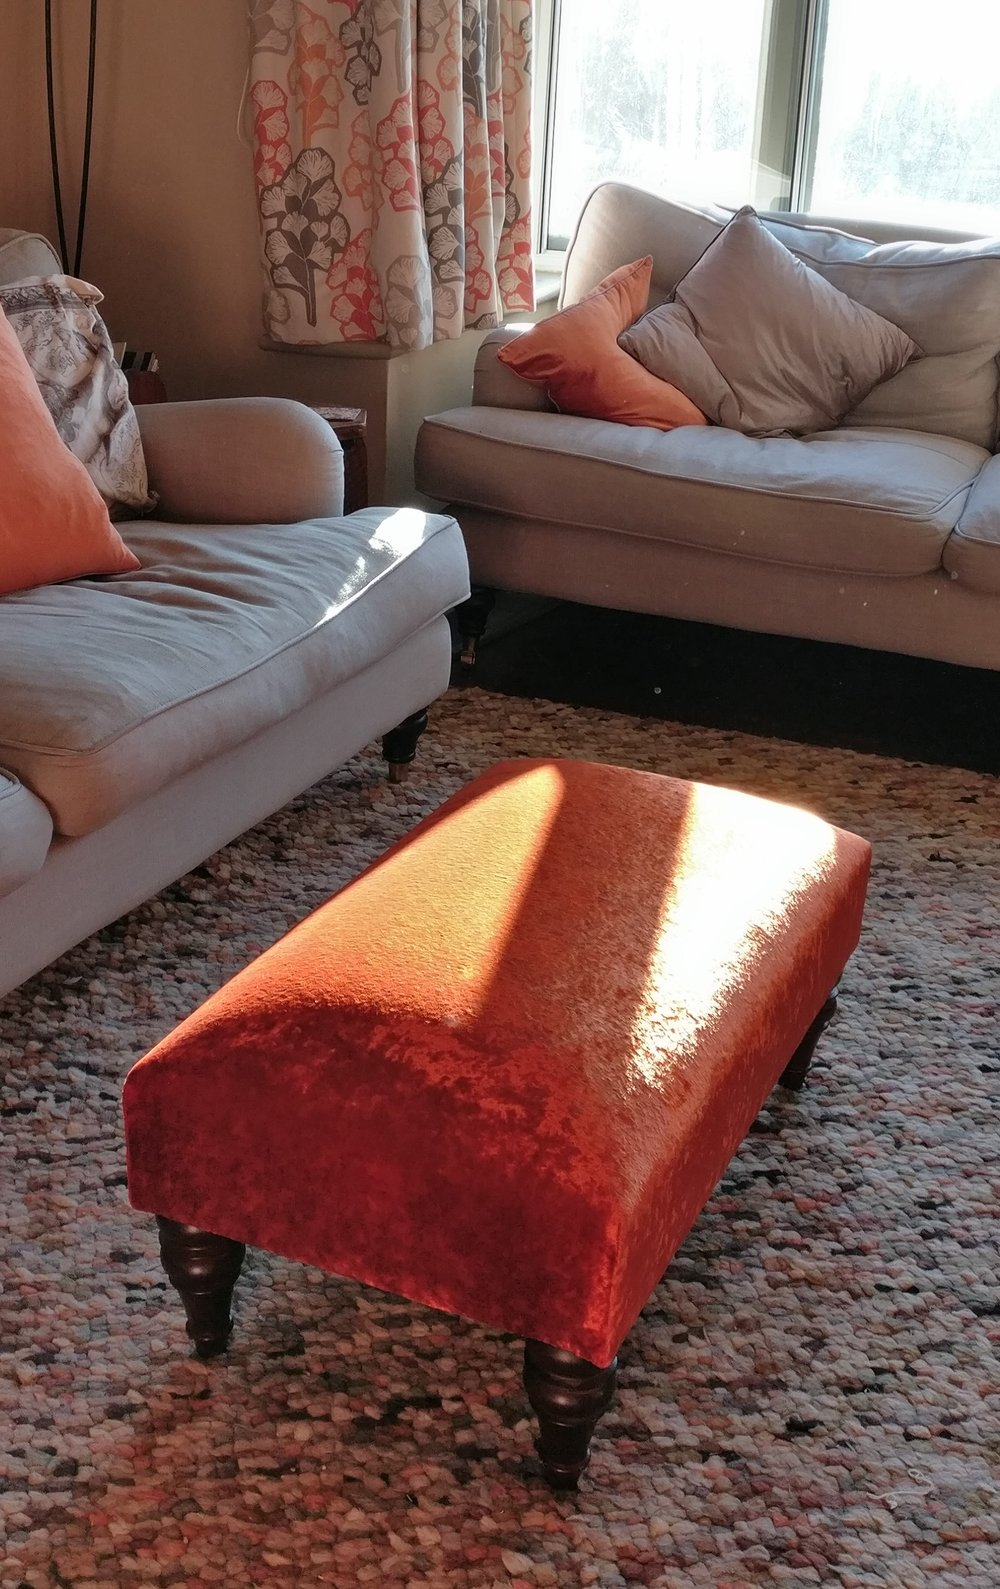 Grist & Twine Upholstery: Footstool reupholstered in orange crushed velvet